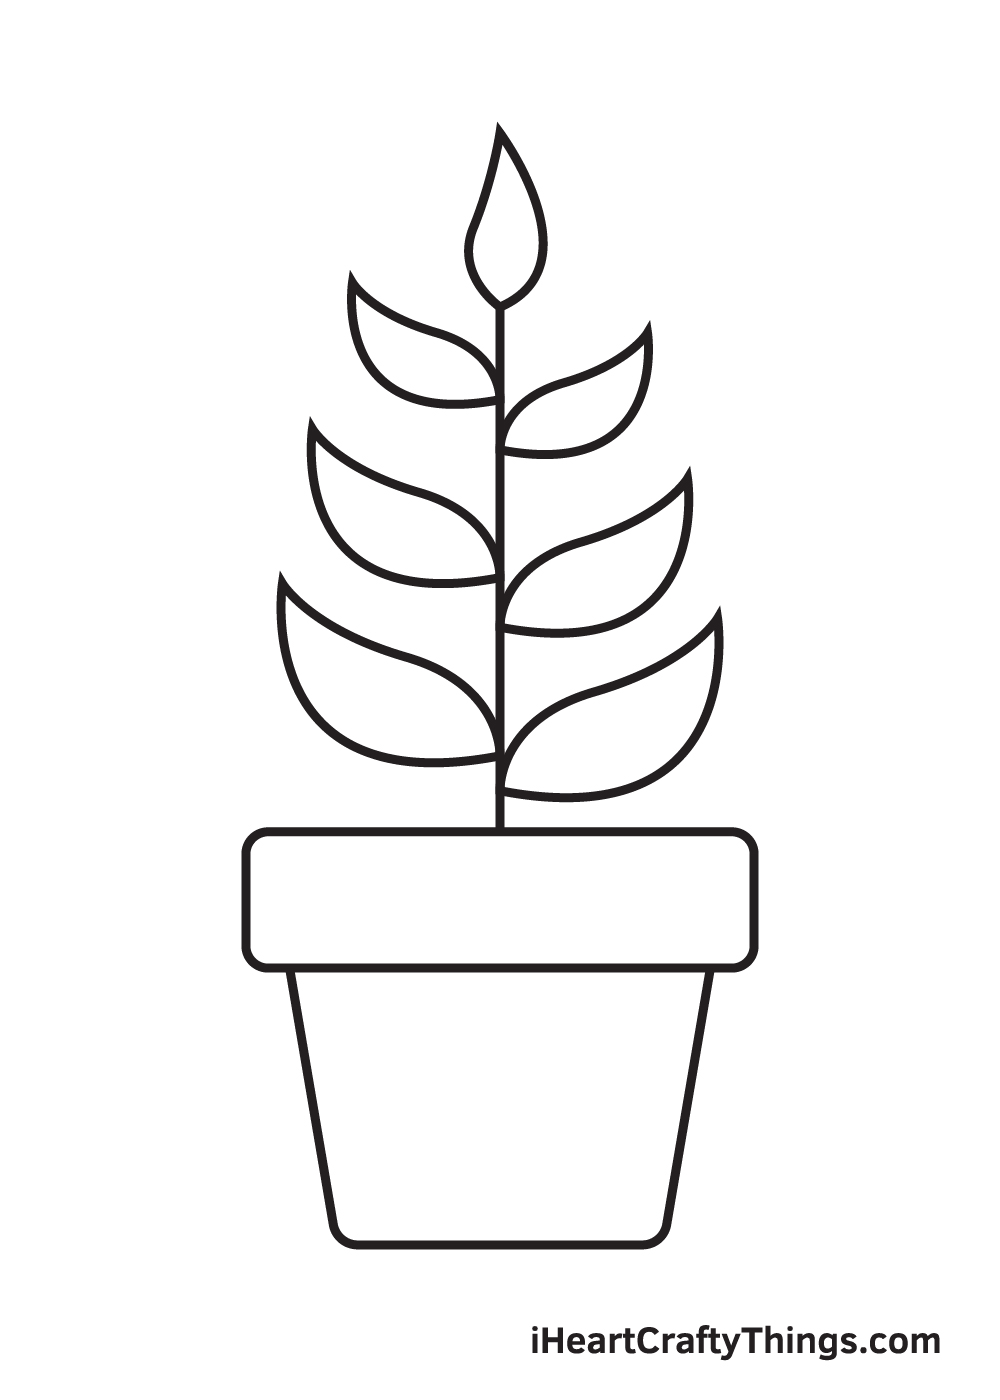 Plant Drawing – Step 9